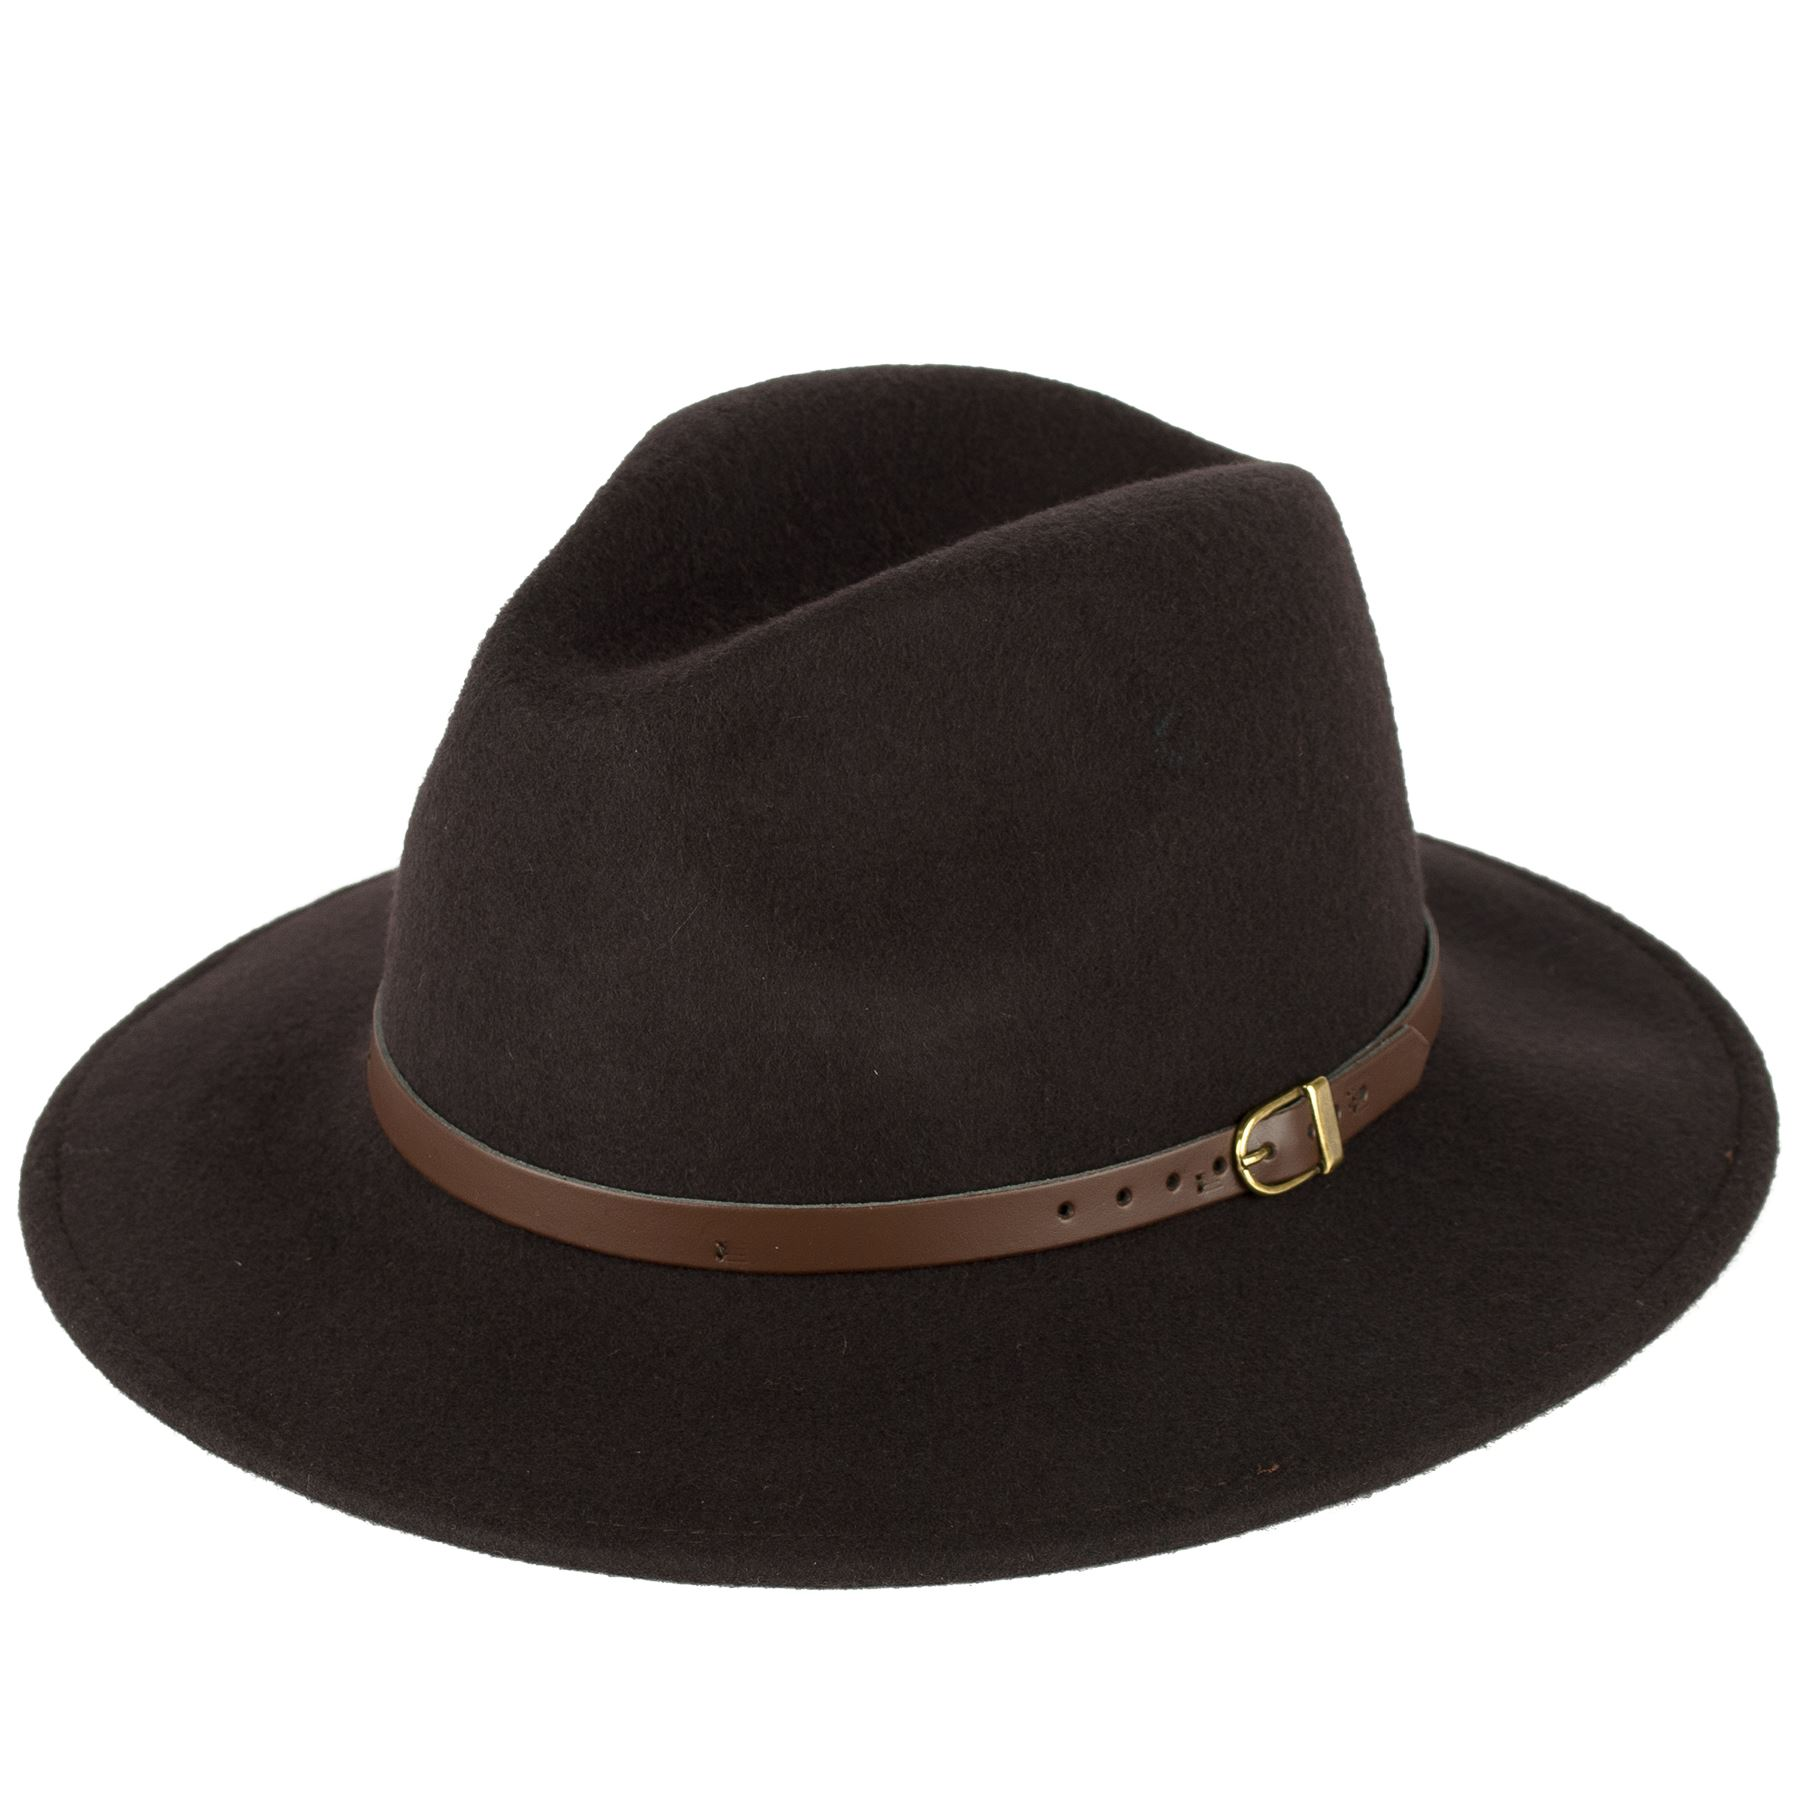 100% Wool Fedora Hat With Faux Leather Belt Handmade In Italy